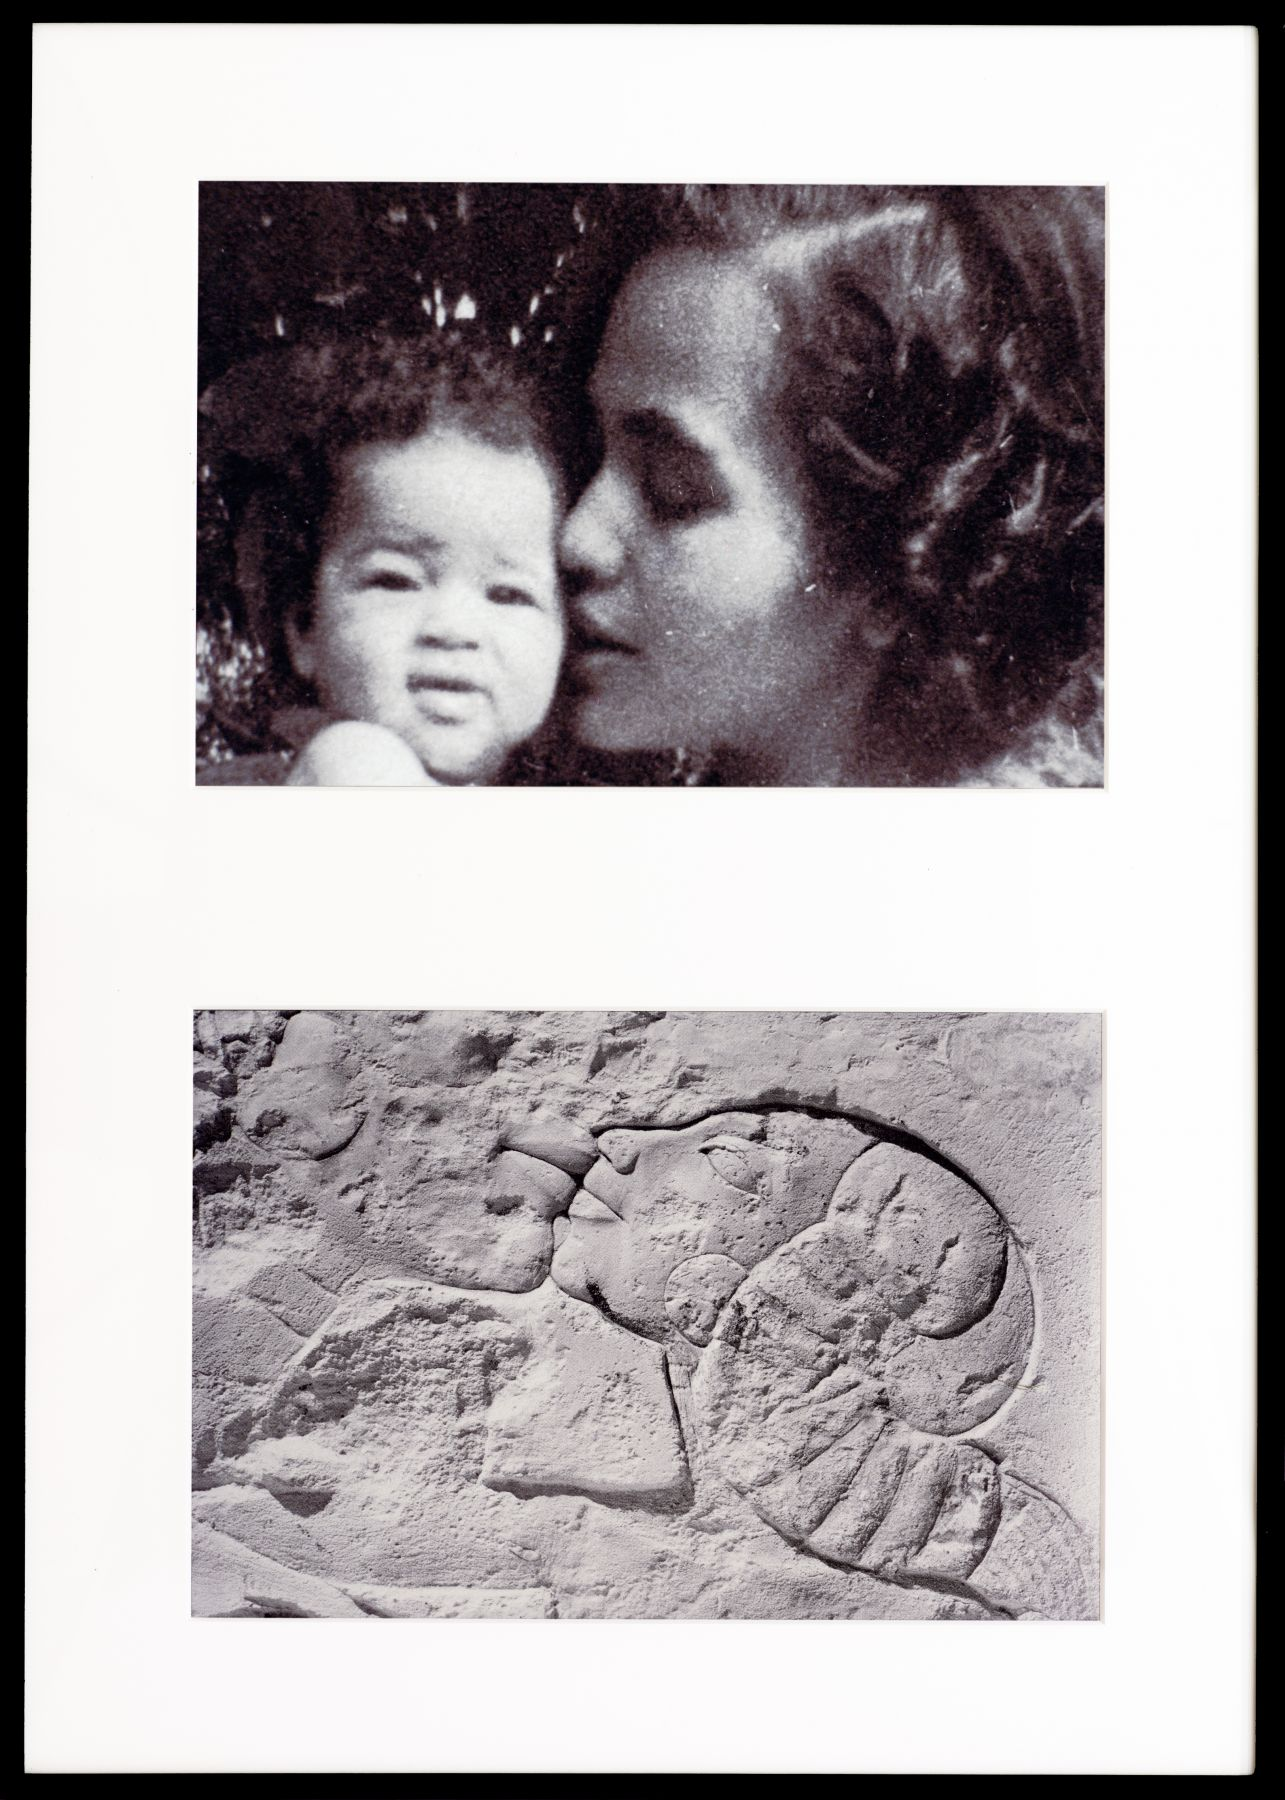 Lorraine O'Grady, Miscegenated Family Album (A Mother's Kiss), T: Candace and Devonia; B: Nefertiti and daughter, 1980/1994